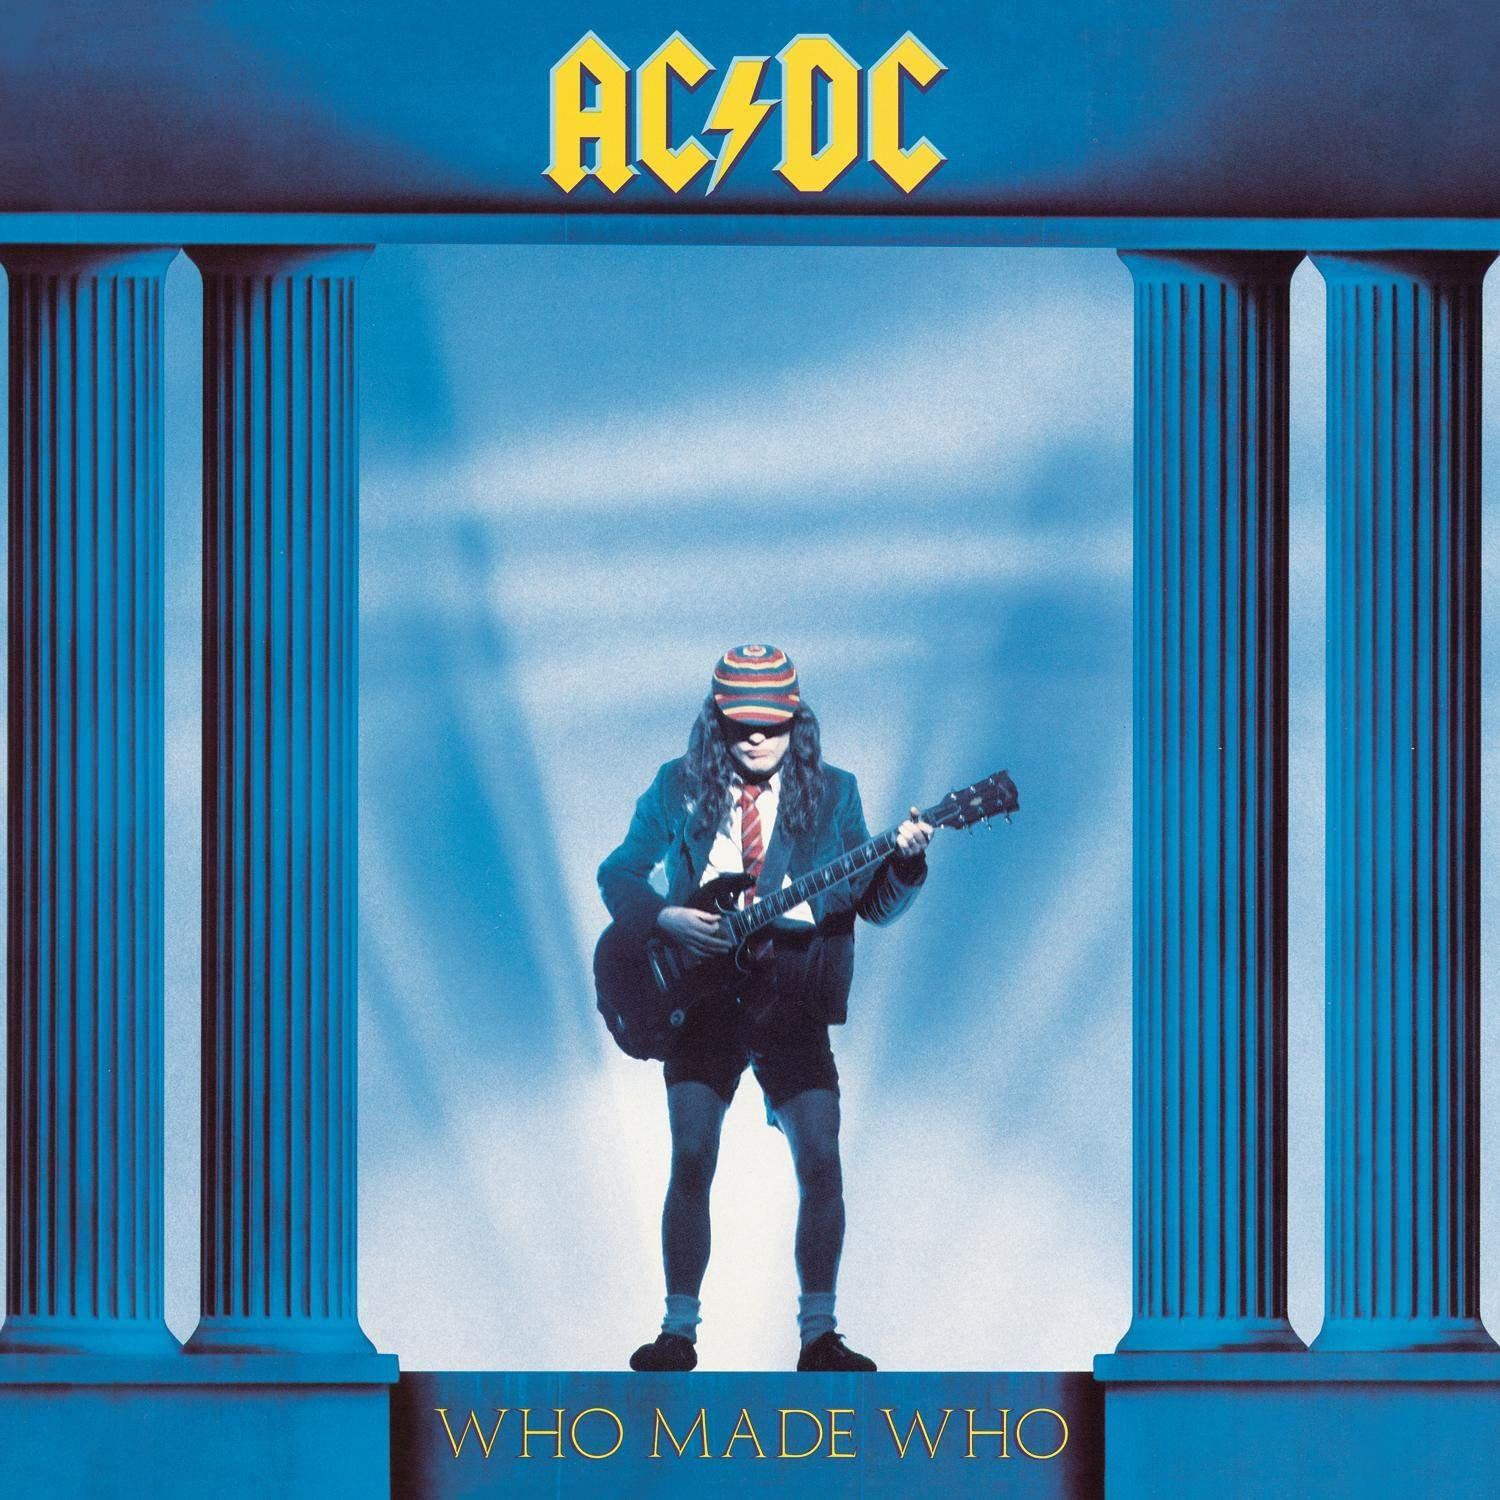 LP Vinil AC/DC - Who Made Who - Importado